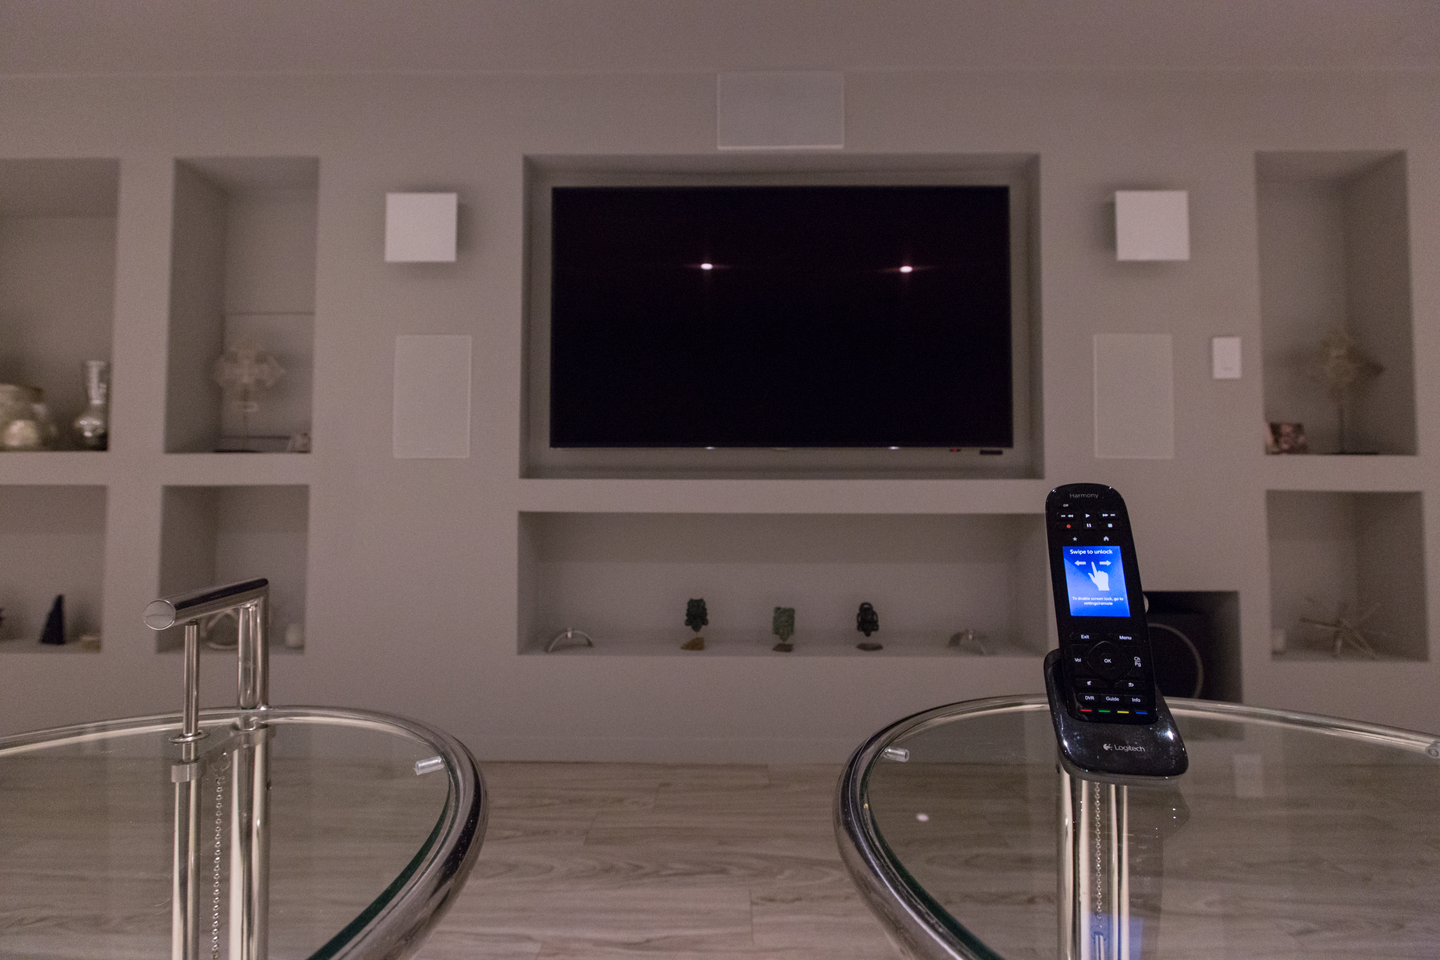 home theater system with POLK audio speakers and universal remote control